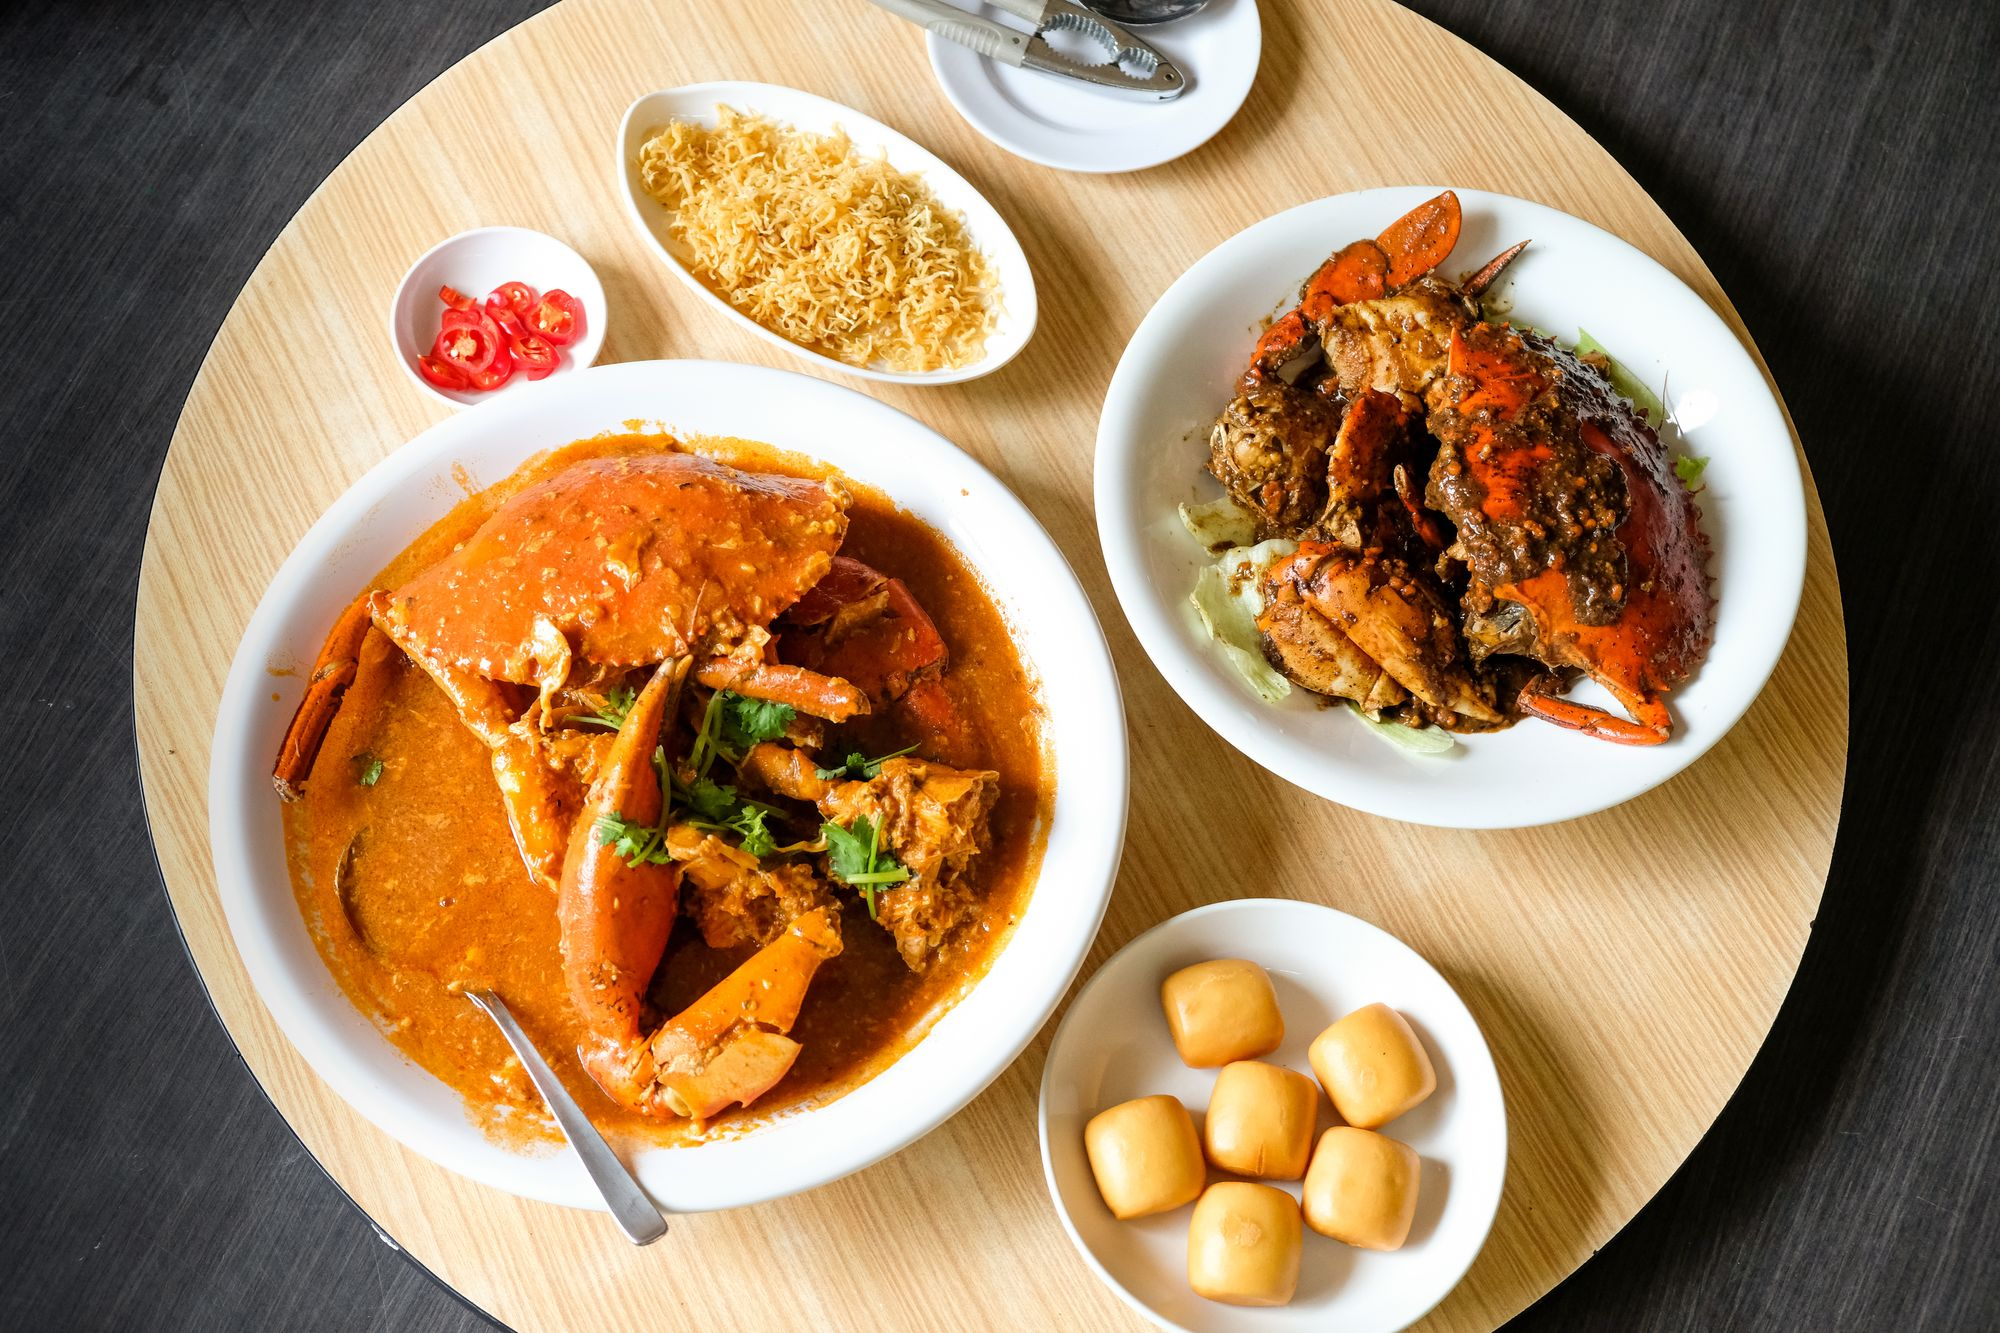 A Divisive But Delicious Question In Singapore: Chicken Rice Or Chili Crab?